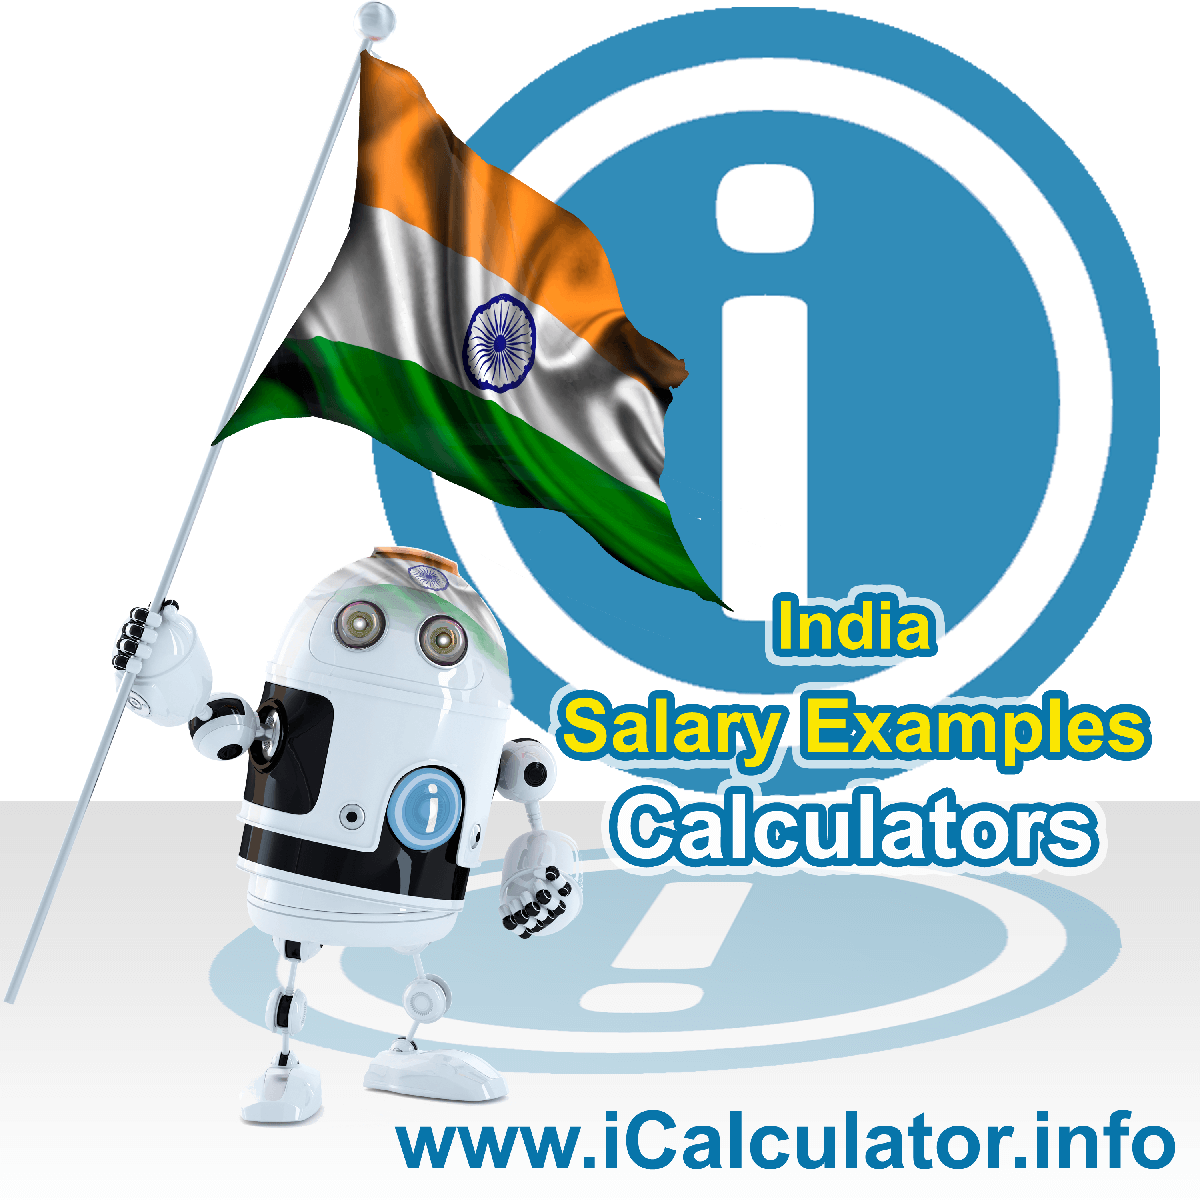 India Income Tax Example for ₹16,86,500.00 Salary. This image shows the flag of India and information relating to the tax formula for the India Income Tax Calculator used to create this payroll example for India